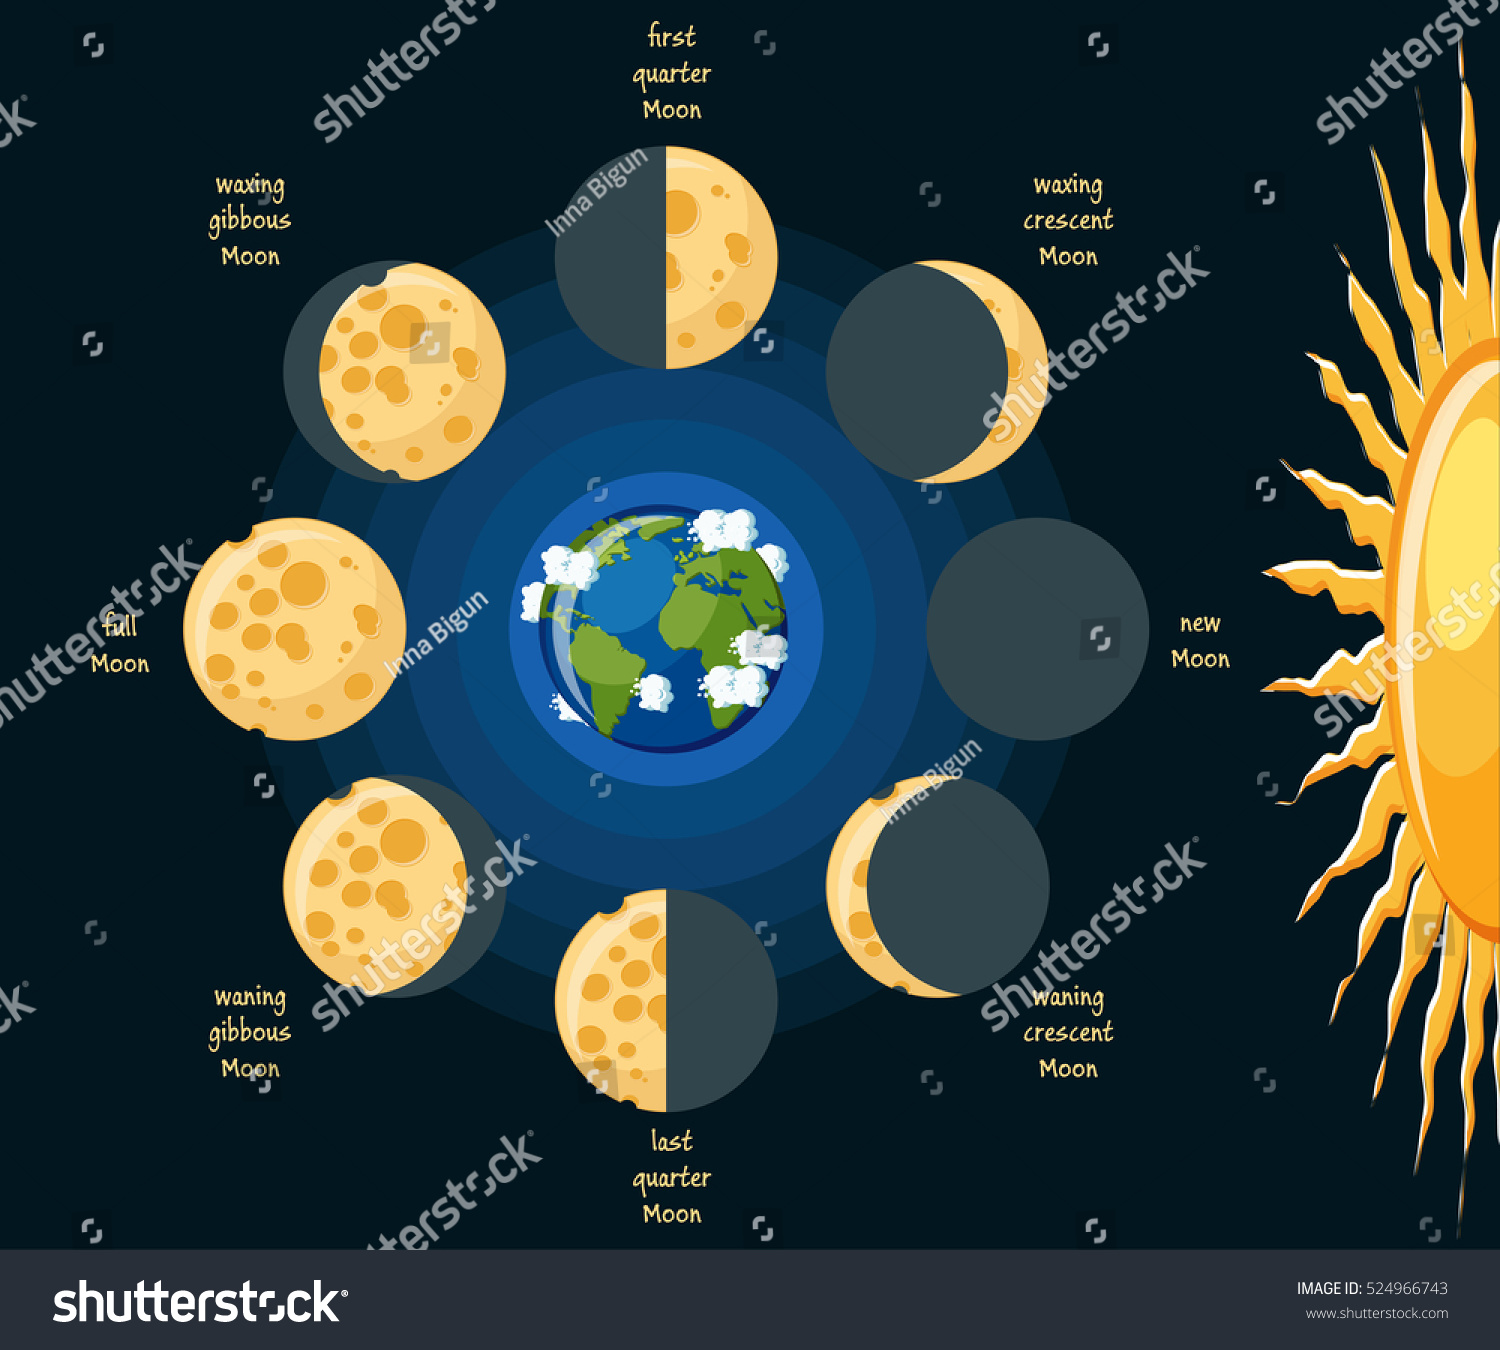 Basic Moon Phases Diagram Cheese Moon Stock Vector